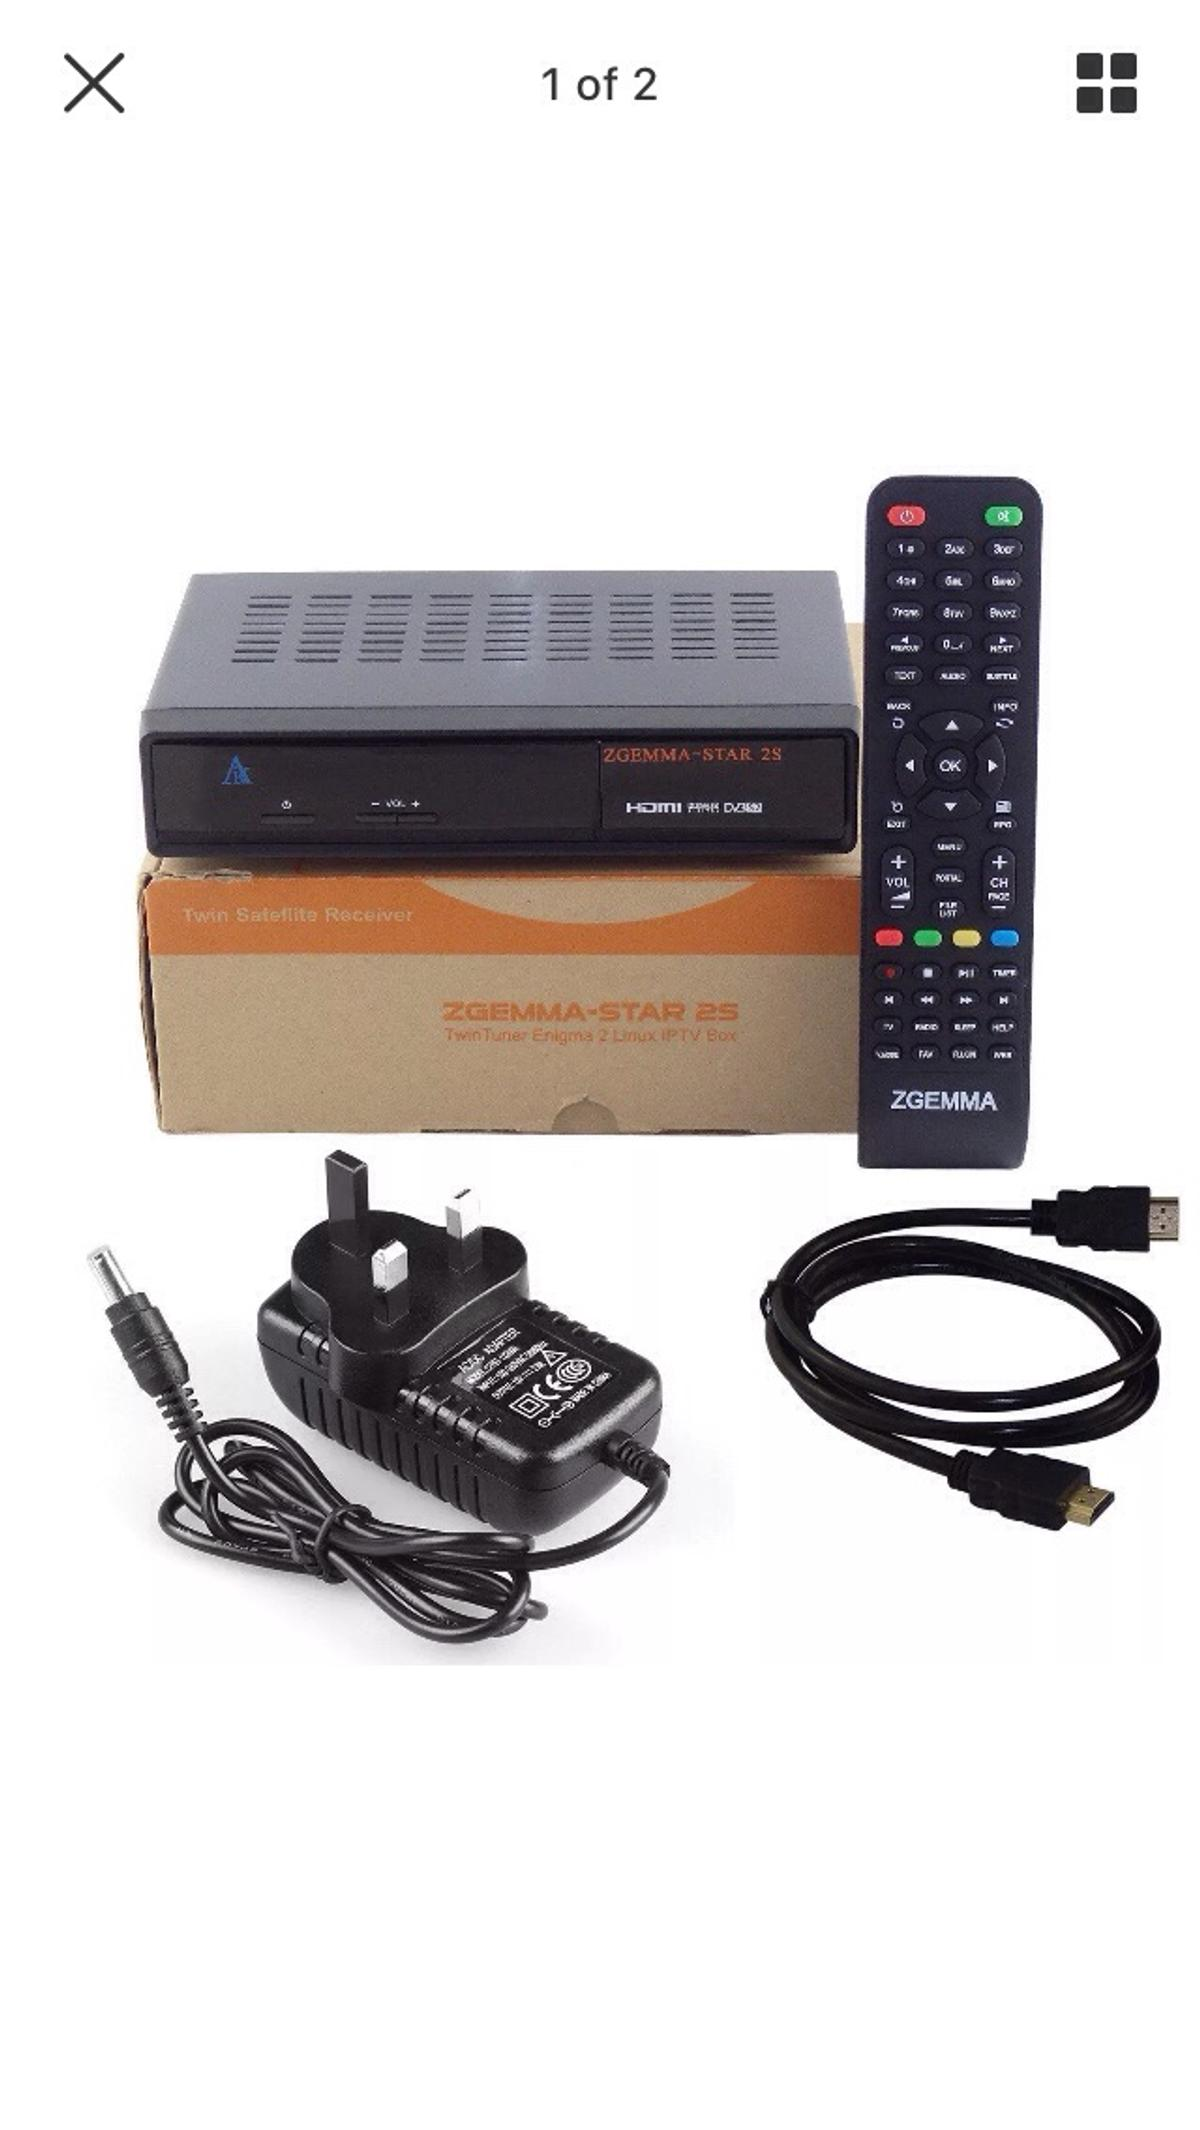 zgemma star 2s +12 month all channels in WF15 Liversedge for £100 00